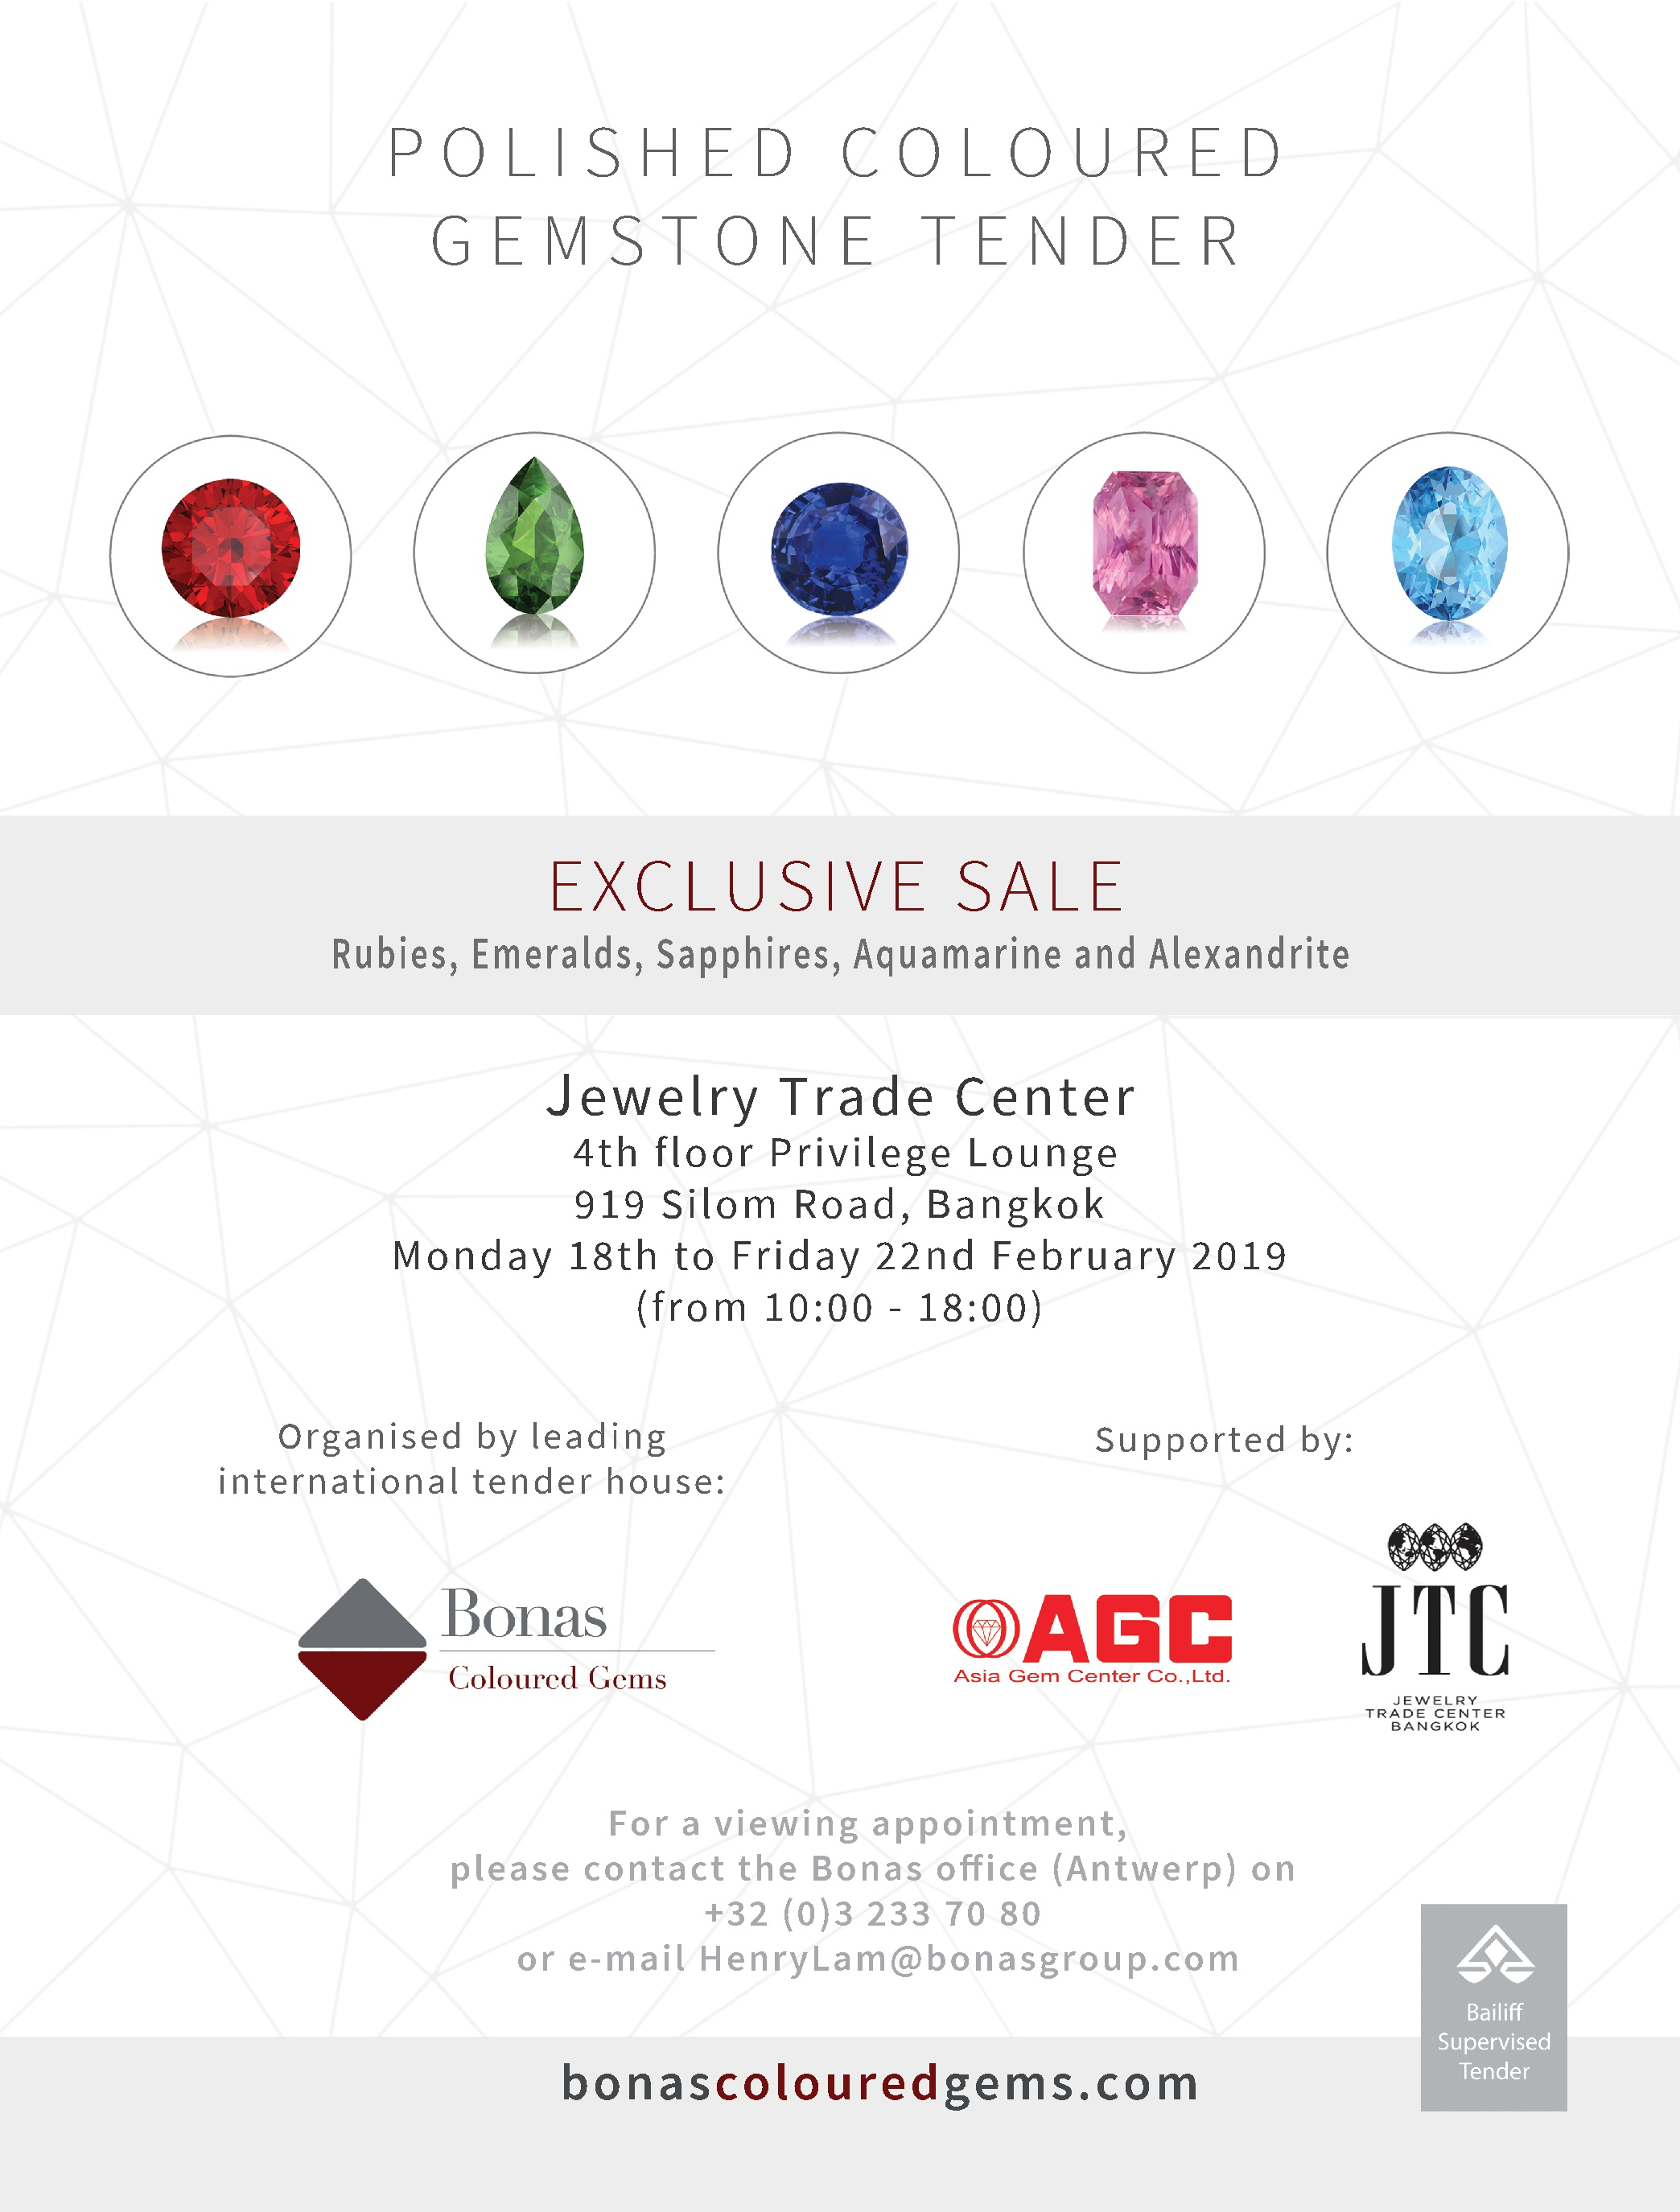 Bonas to Hold an Exceptional Polished Coloured Gem Tender at Jewelry Trade Center - By Isabella Yan Posted : 11 Mar 2019 Category : News